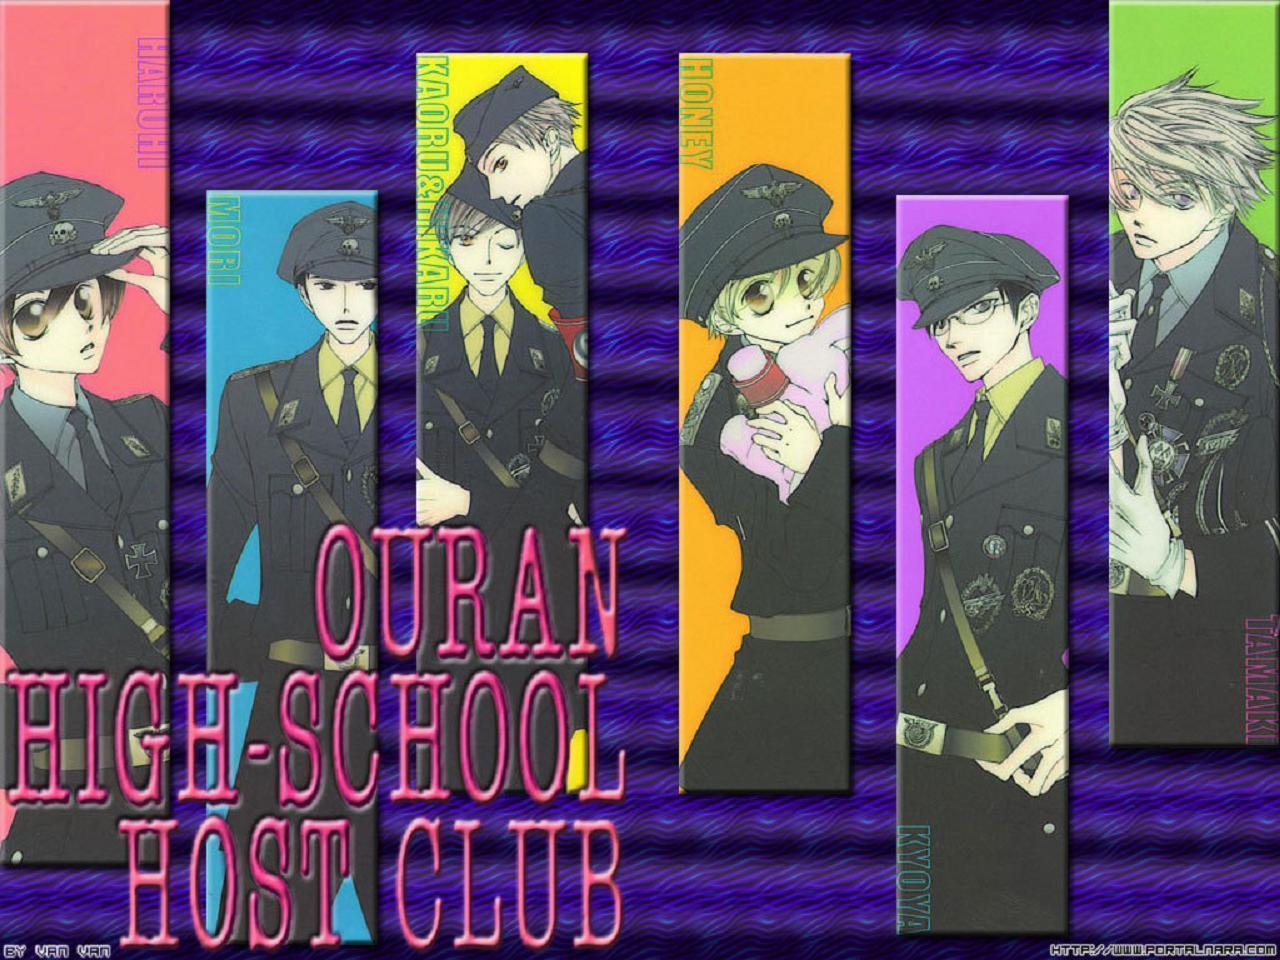 Ouran high school host club host club